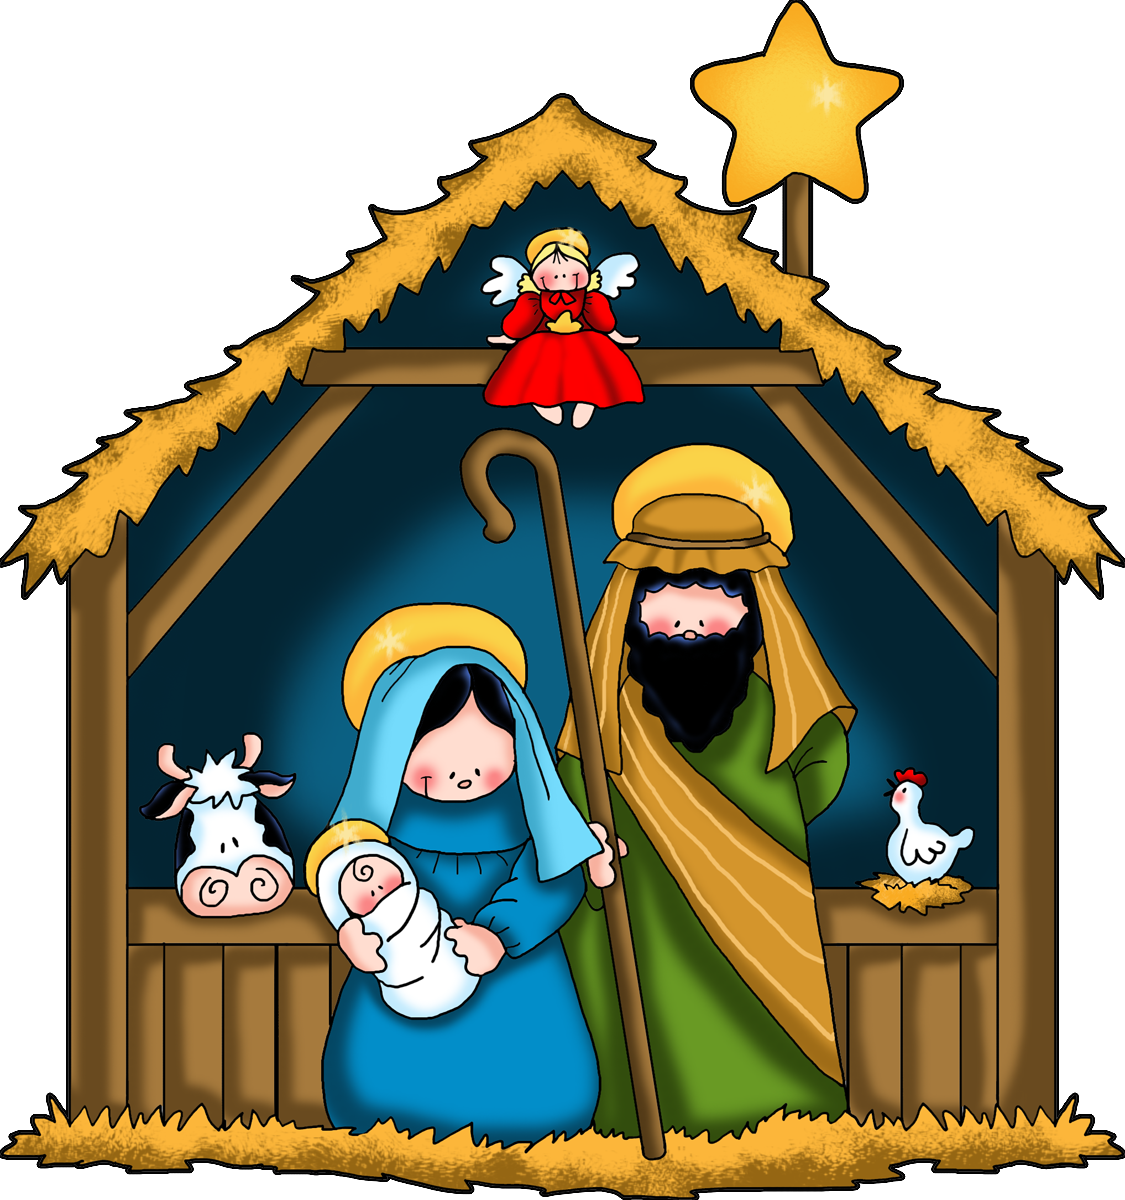 Nativity Scene Images Www ClipArt Best